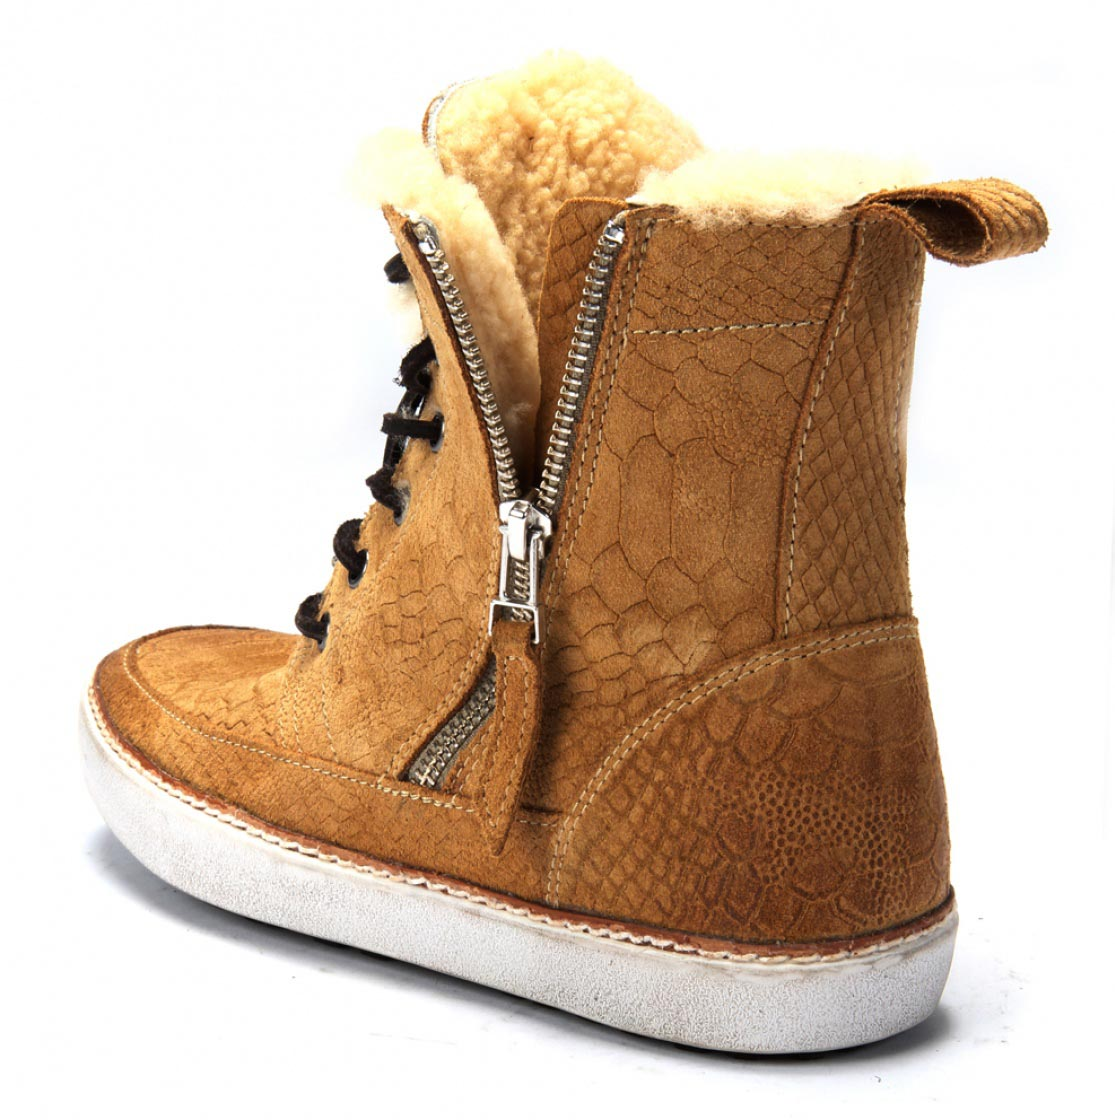 Blackstone lion reptiel sneaker high top